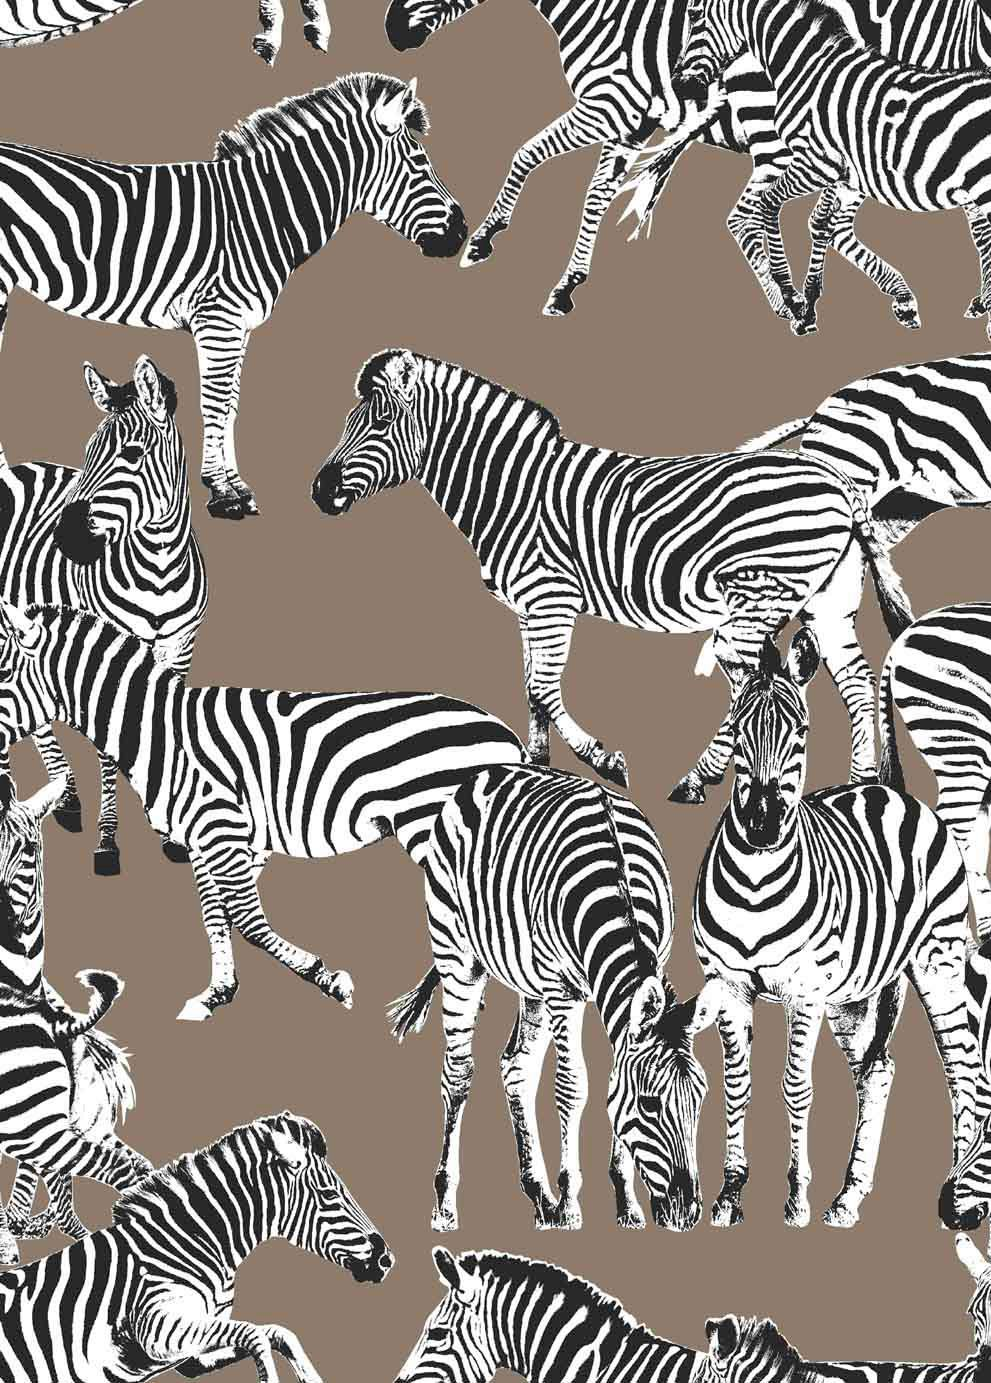 Zebras Chocolate Mousse Wallpaper By Vilber Zebra Wallpaper Animal Print Wallpaper Zebras